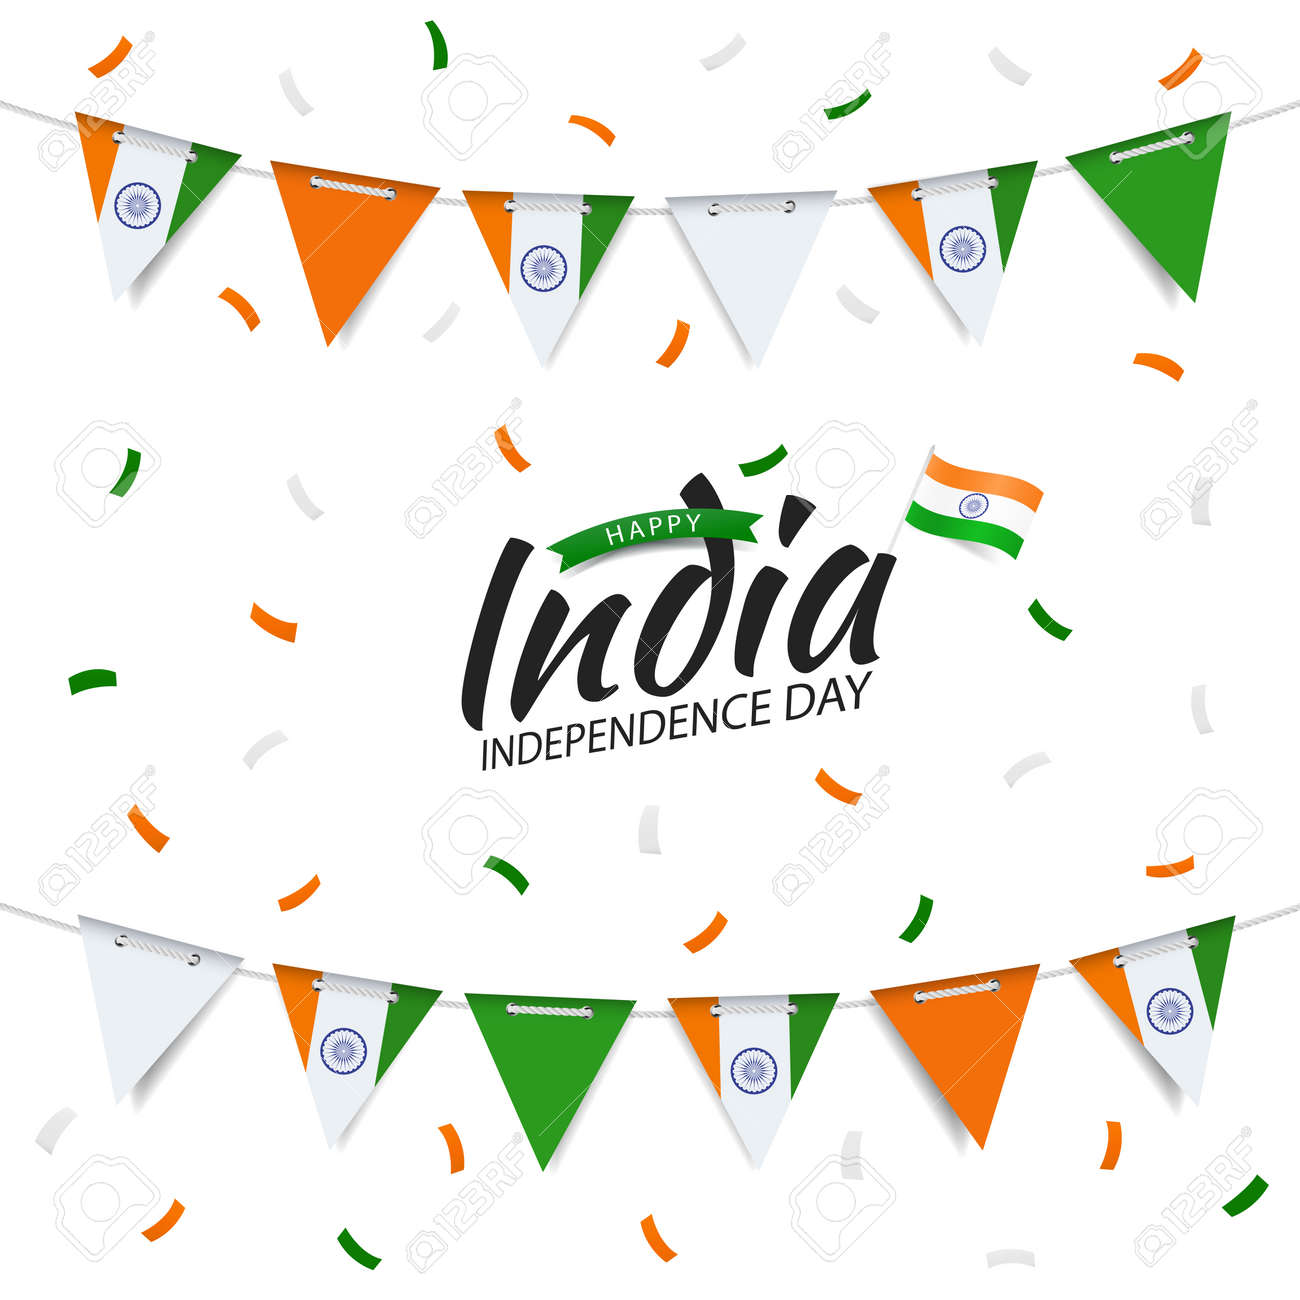 Vector Illustration of India Independence Day. Garland with the flag of India on a white background. - 170744619